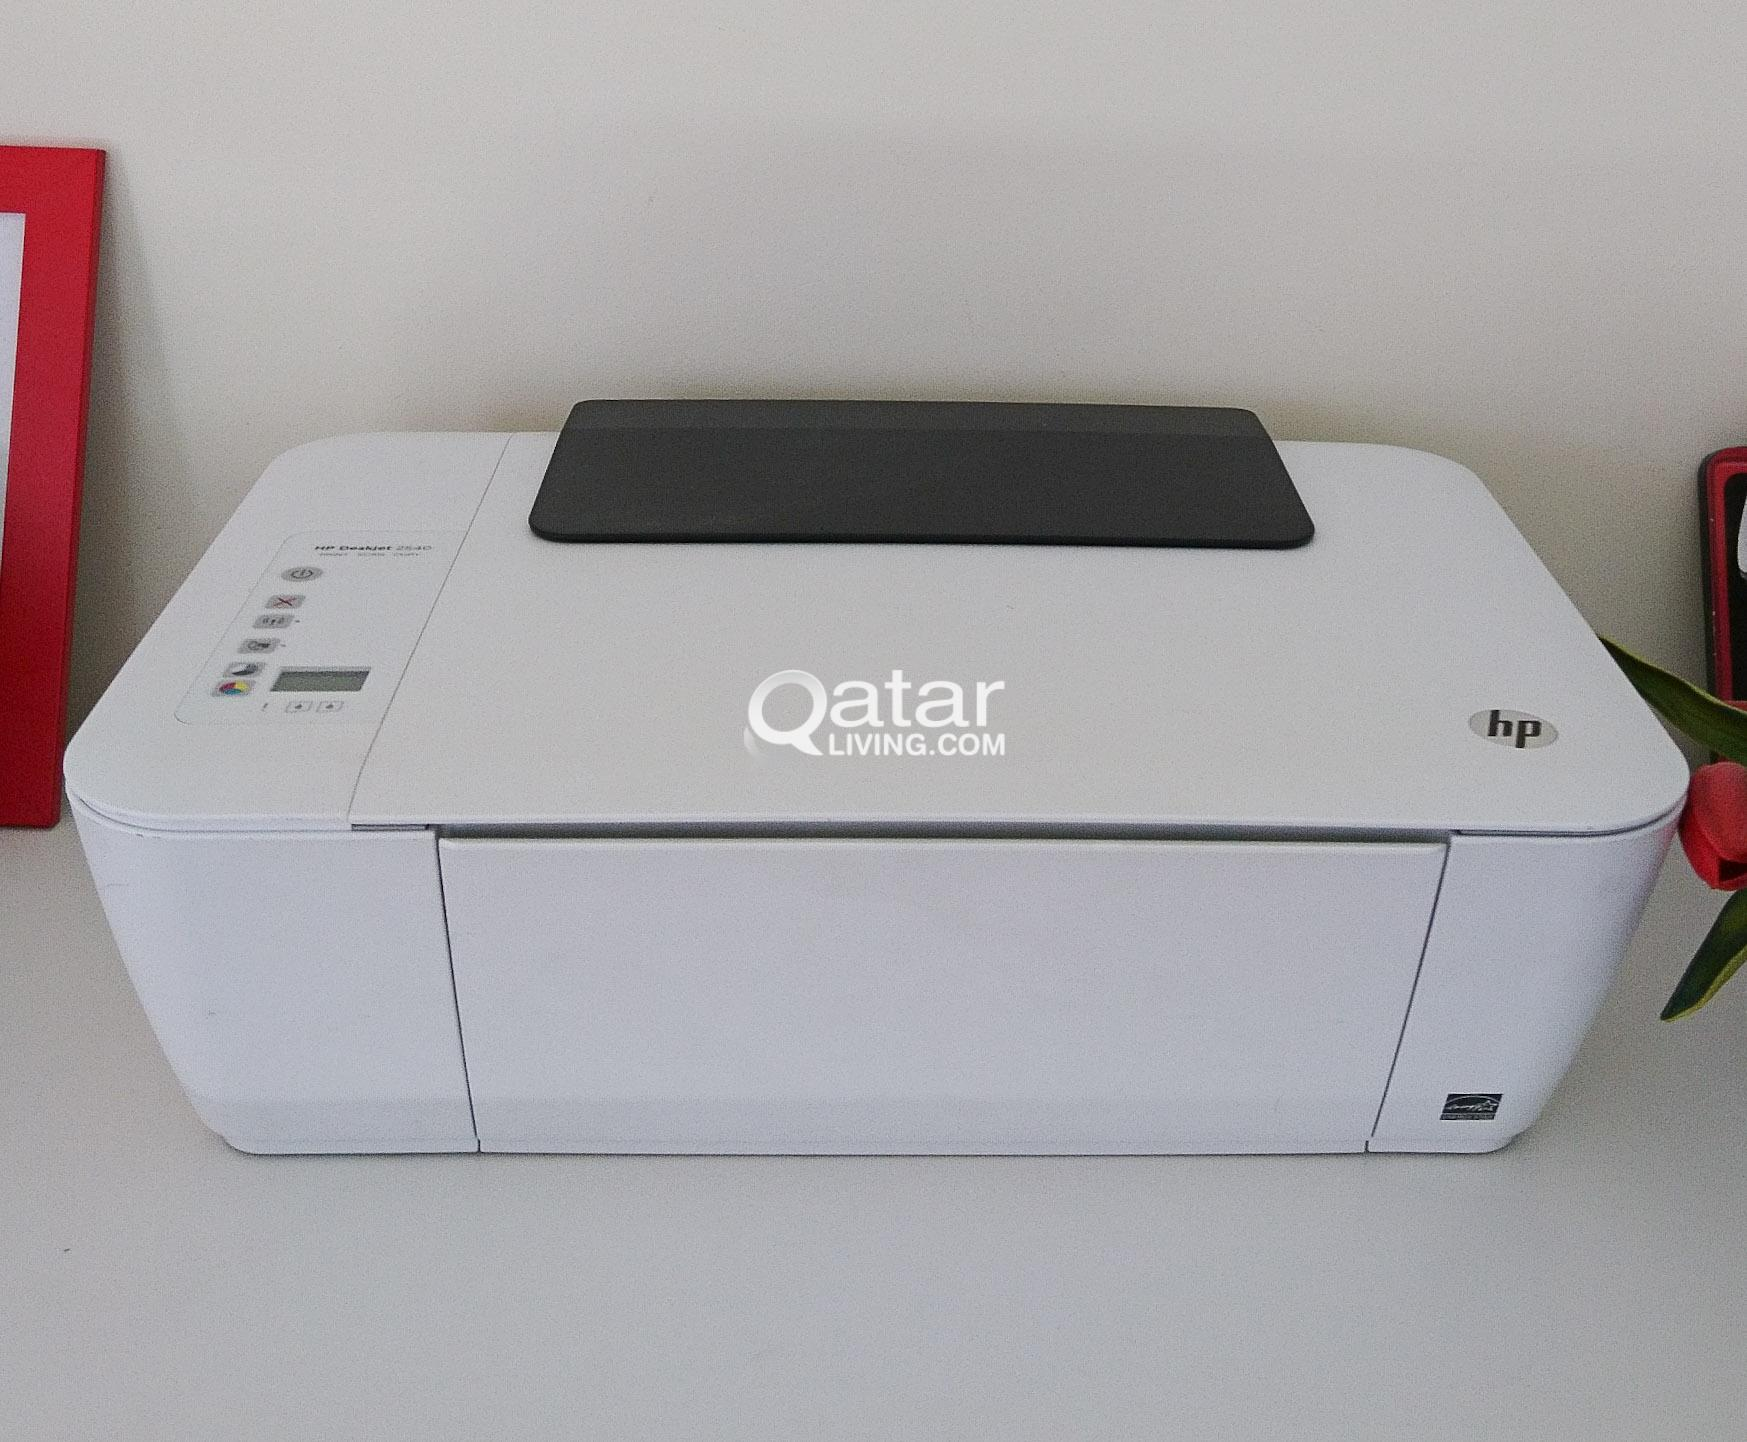 HP Deskjet 2540  3 in 1 WIFI printer, copier, scanner | Qatar Living